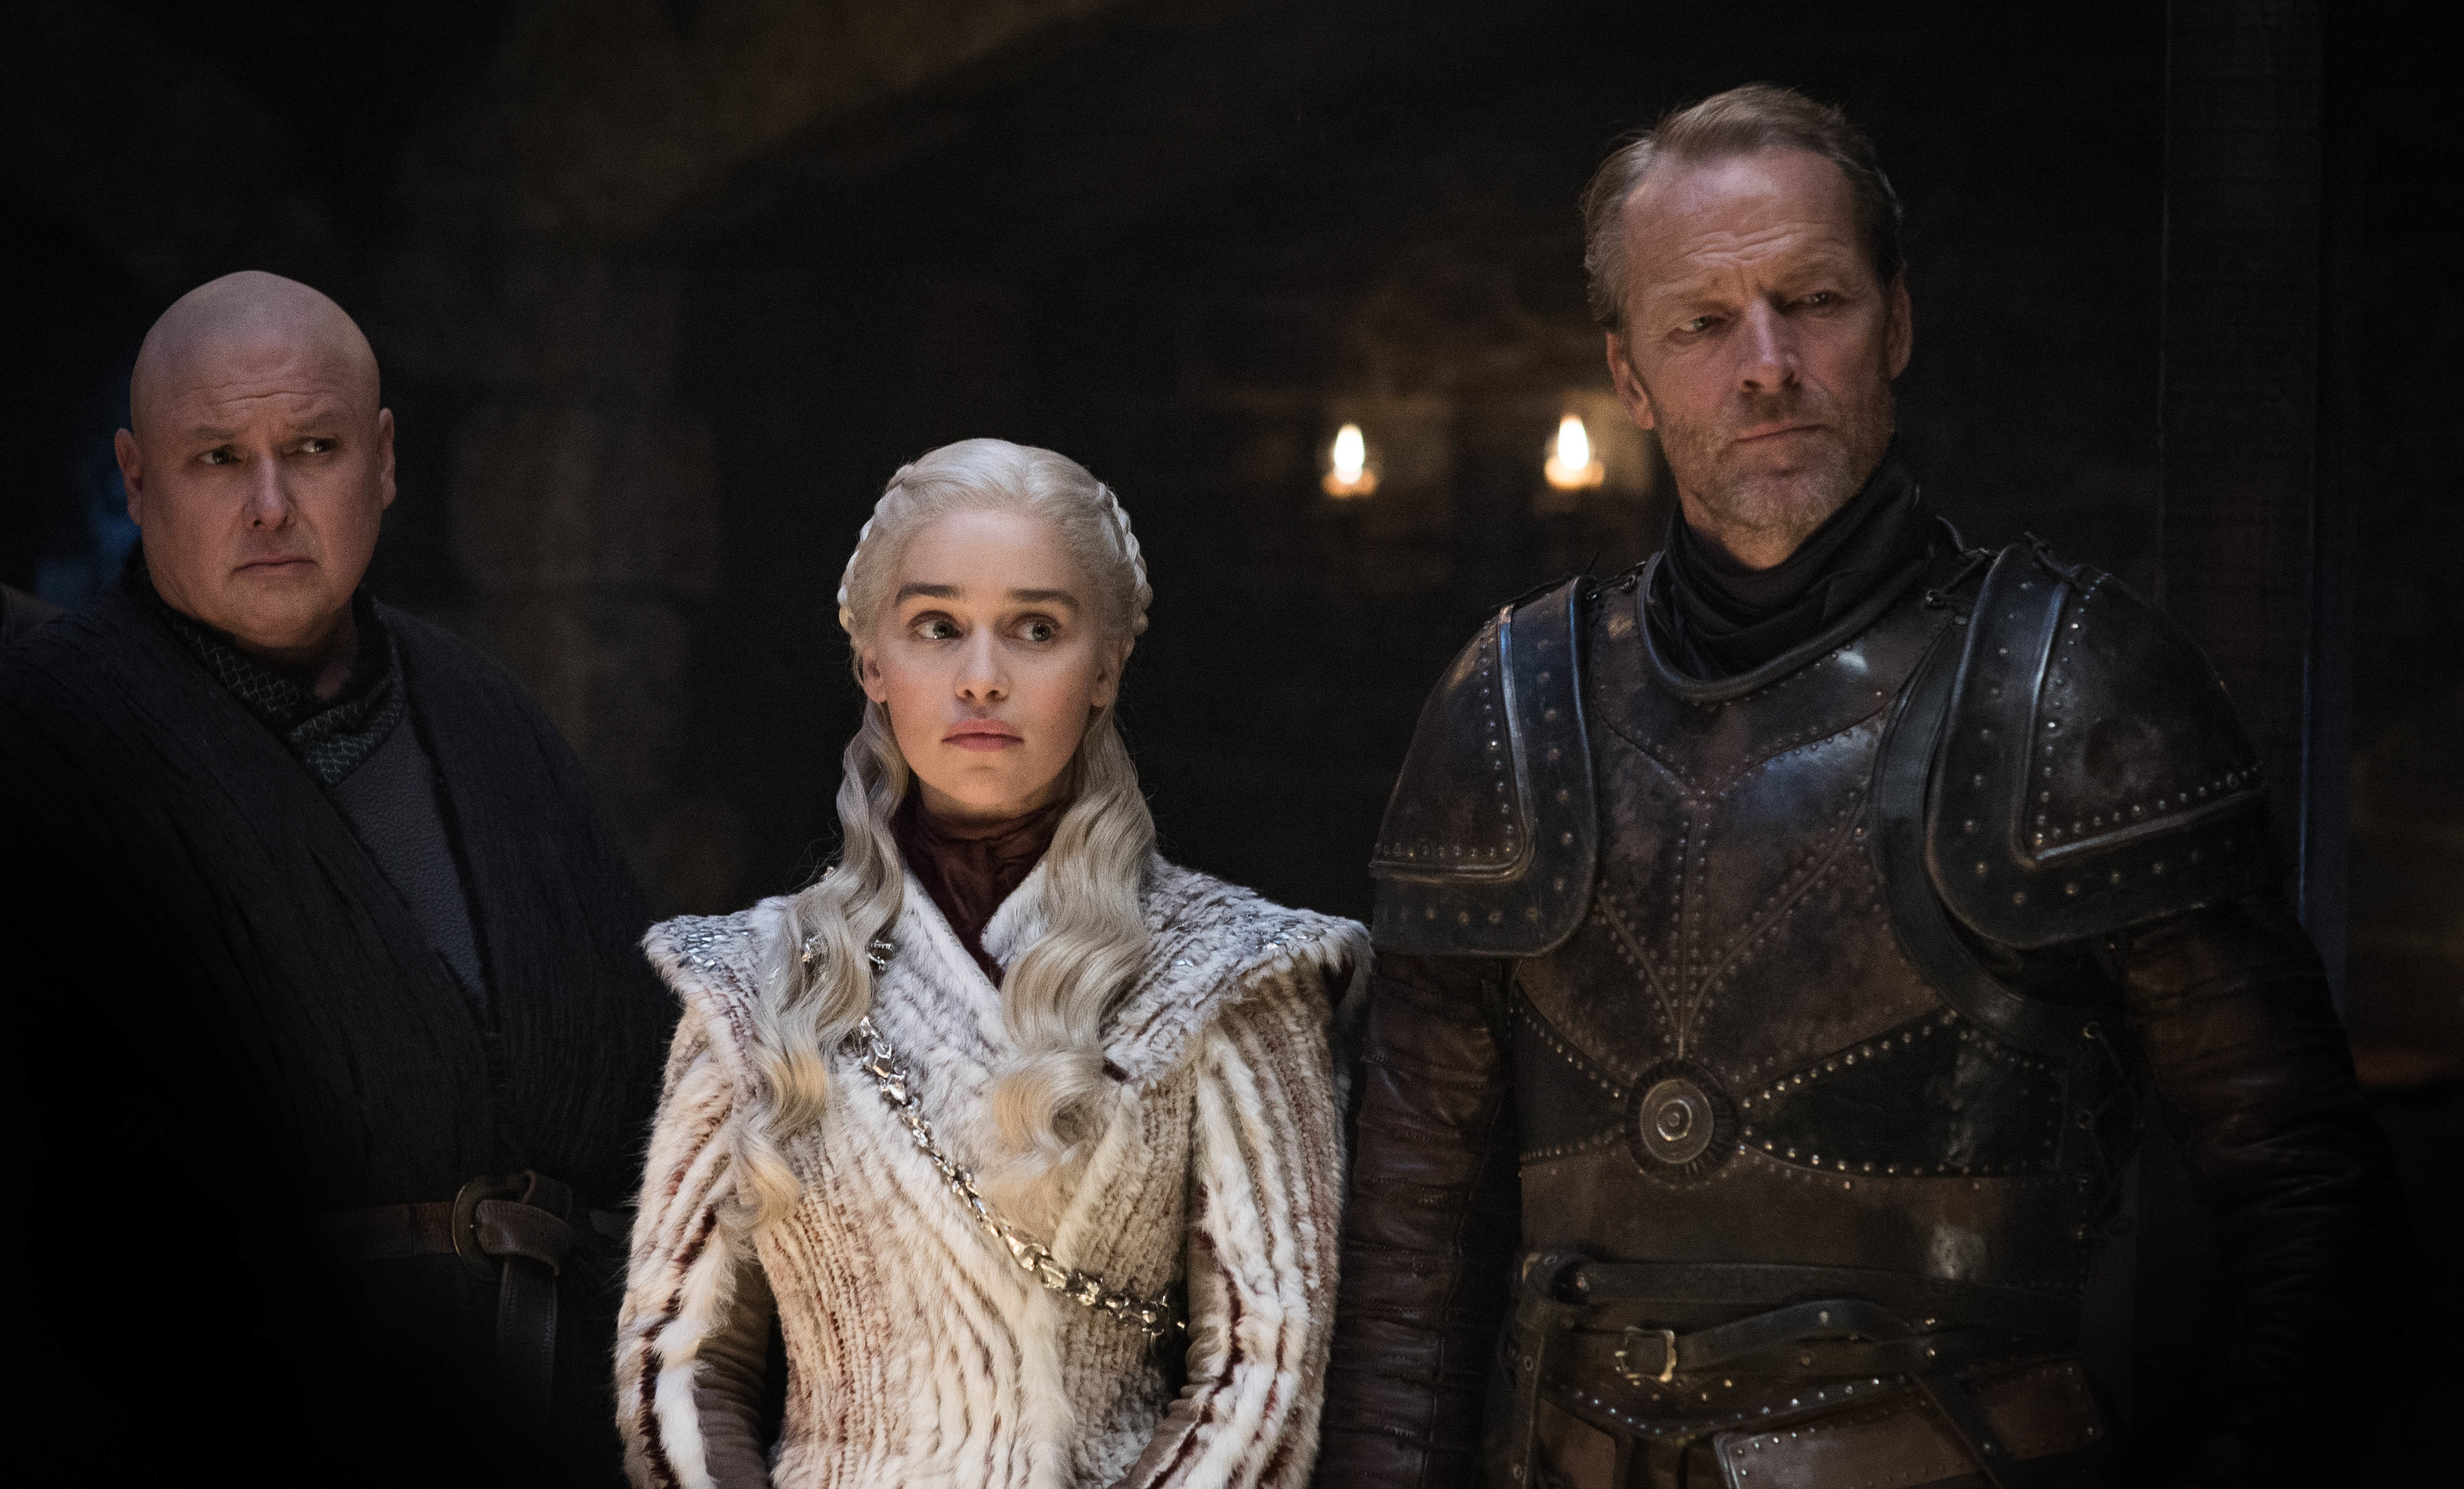 Conleth Hill as Varys, Emilia Clarke as Daenerys Targaryen, and Iain Glen as Jorah Mormont.